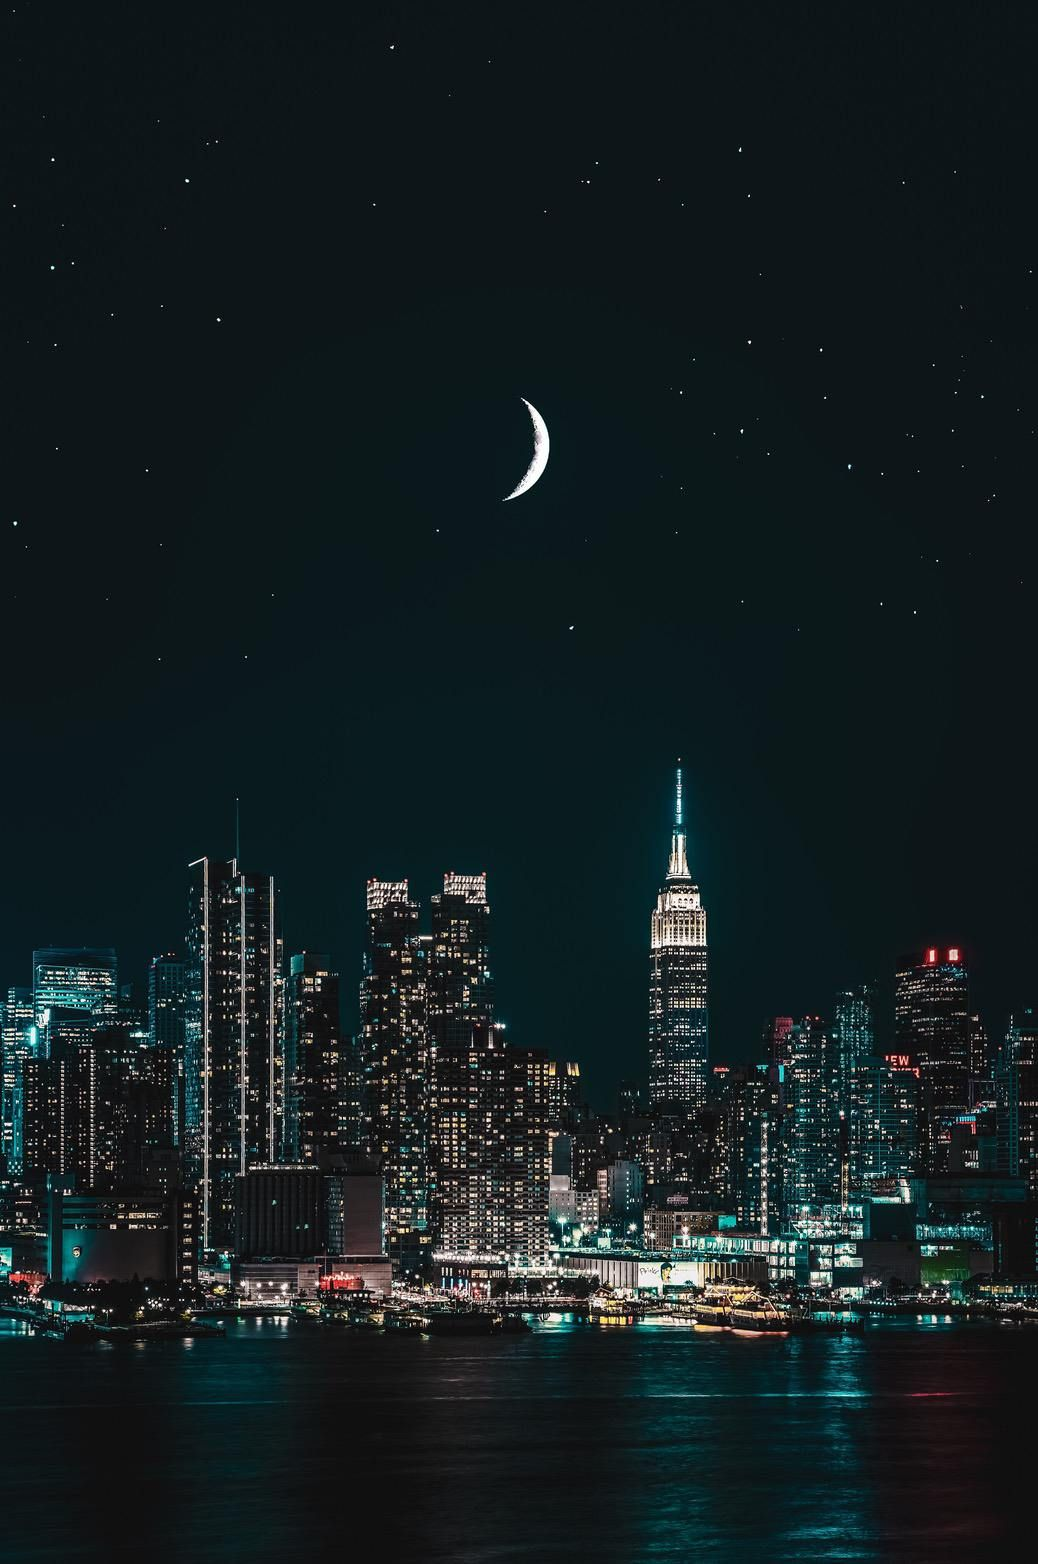 The Best Awesome Black And White Wallpaper Photography For Iphone Tumblr Inspired Black And White Aesthetic Wall In 2020 City Aesthetic Night Aesthetic City Wallpaper